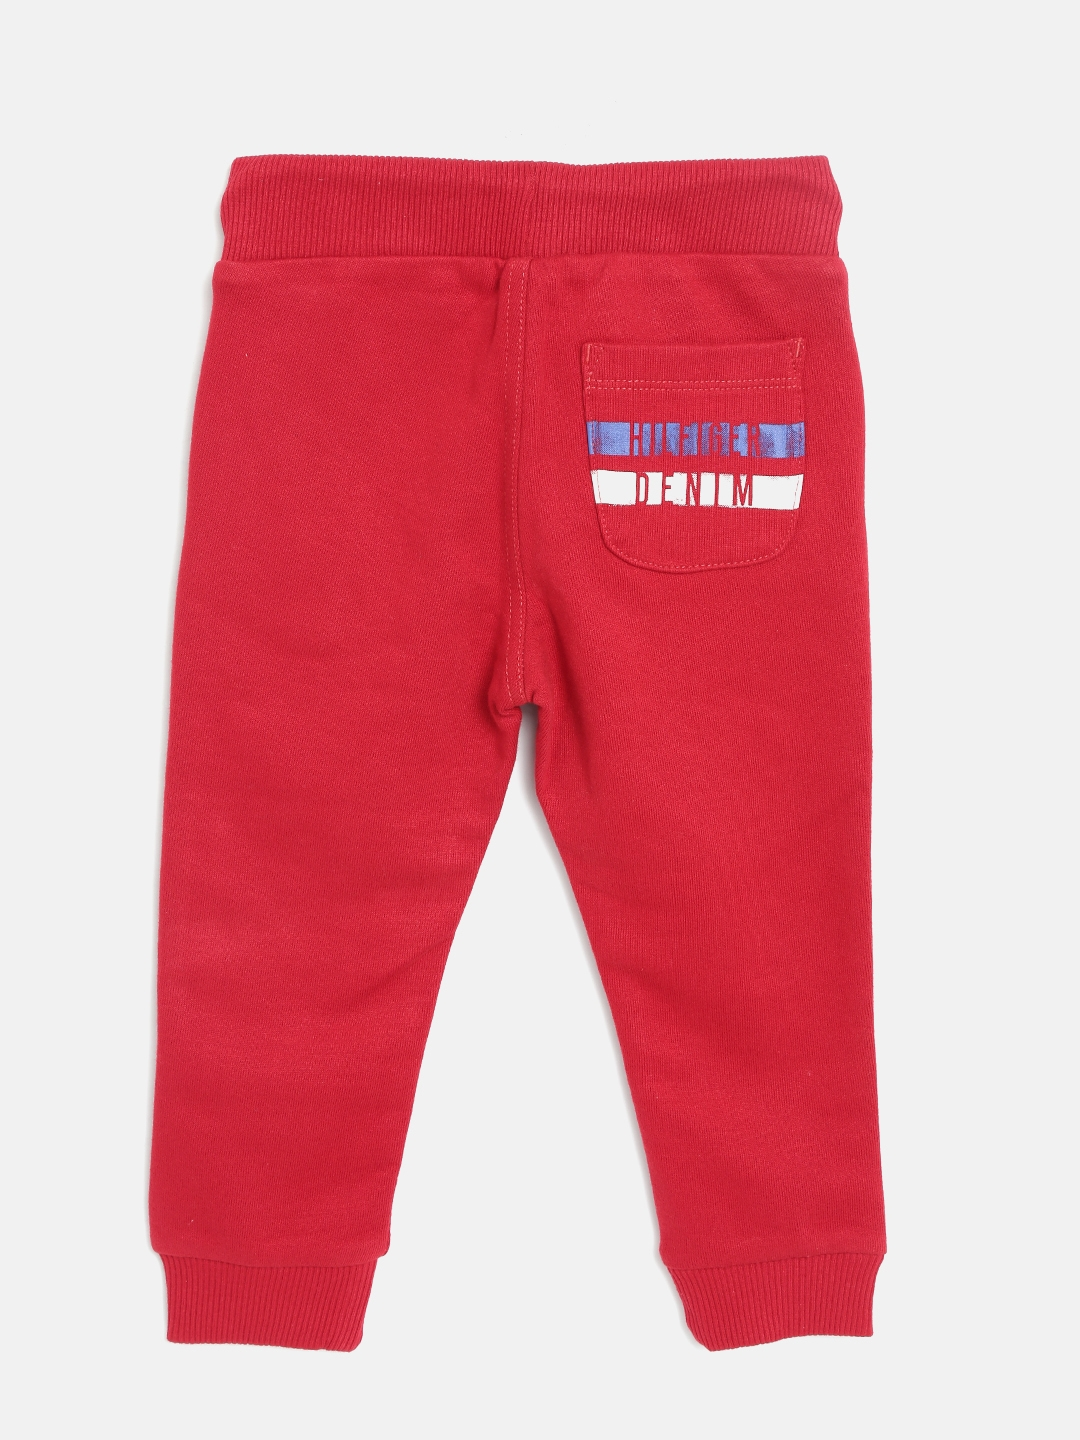 3f5c4059967e Buy Tommy Hilfiger Boys Red Joggers - Track Pants for Boys 1967950 ...